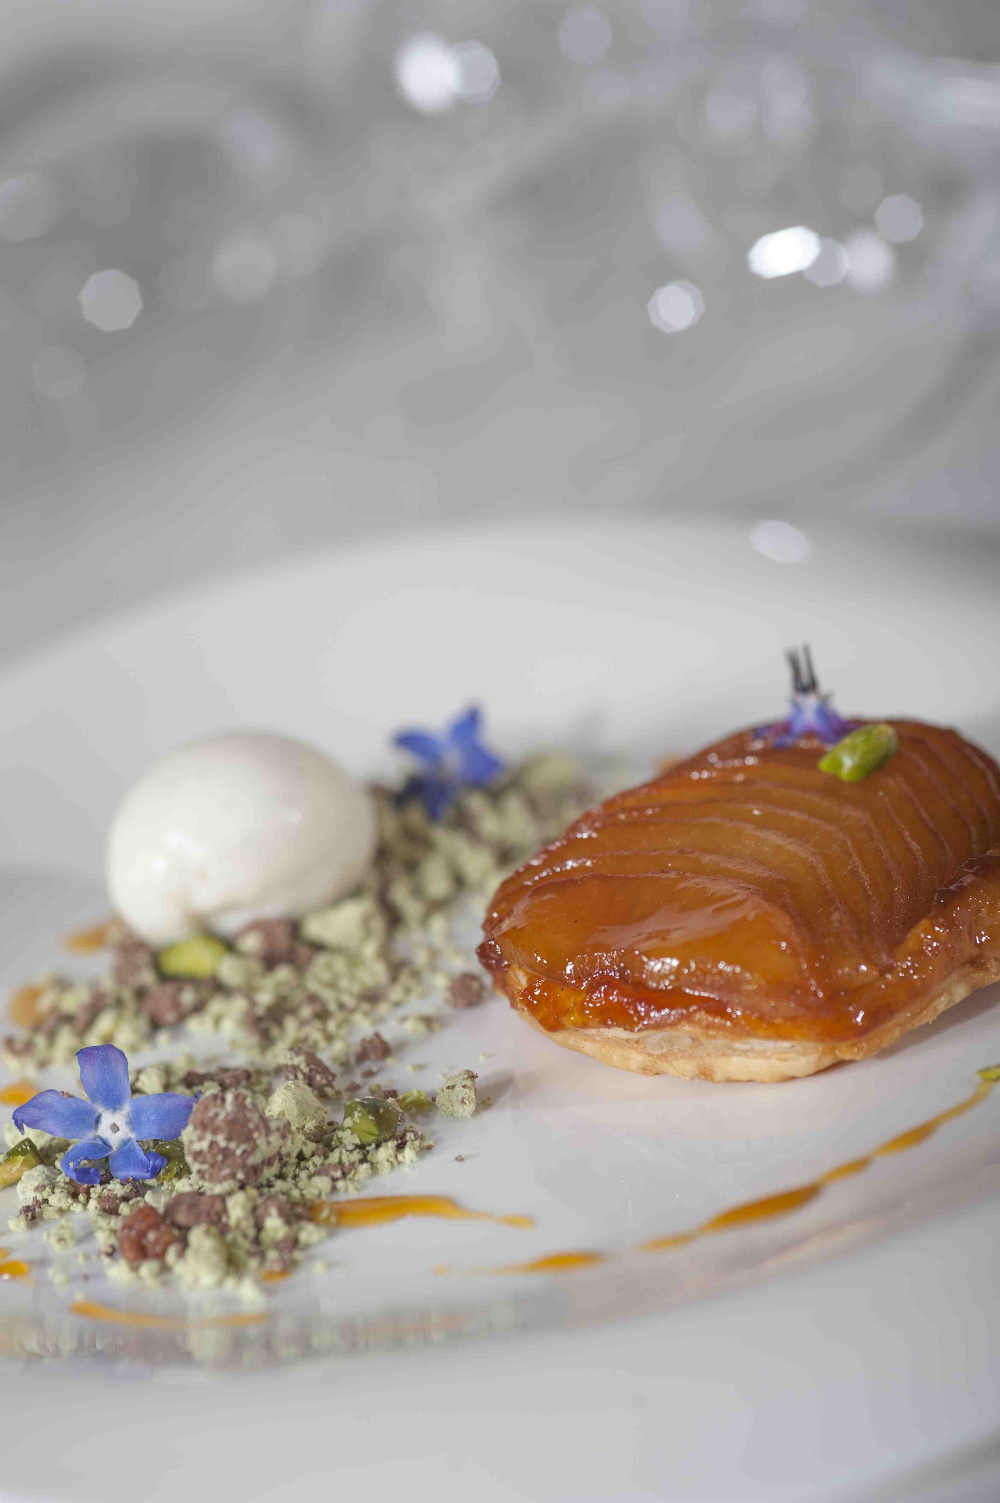 Irish Cider poached Apple Tart Tatin, Cinnamon Ice Cream, Pistachio Soil